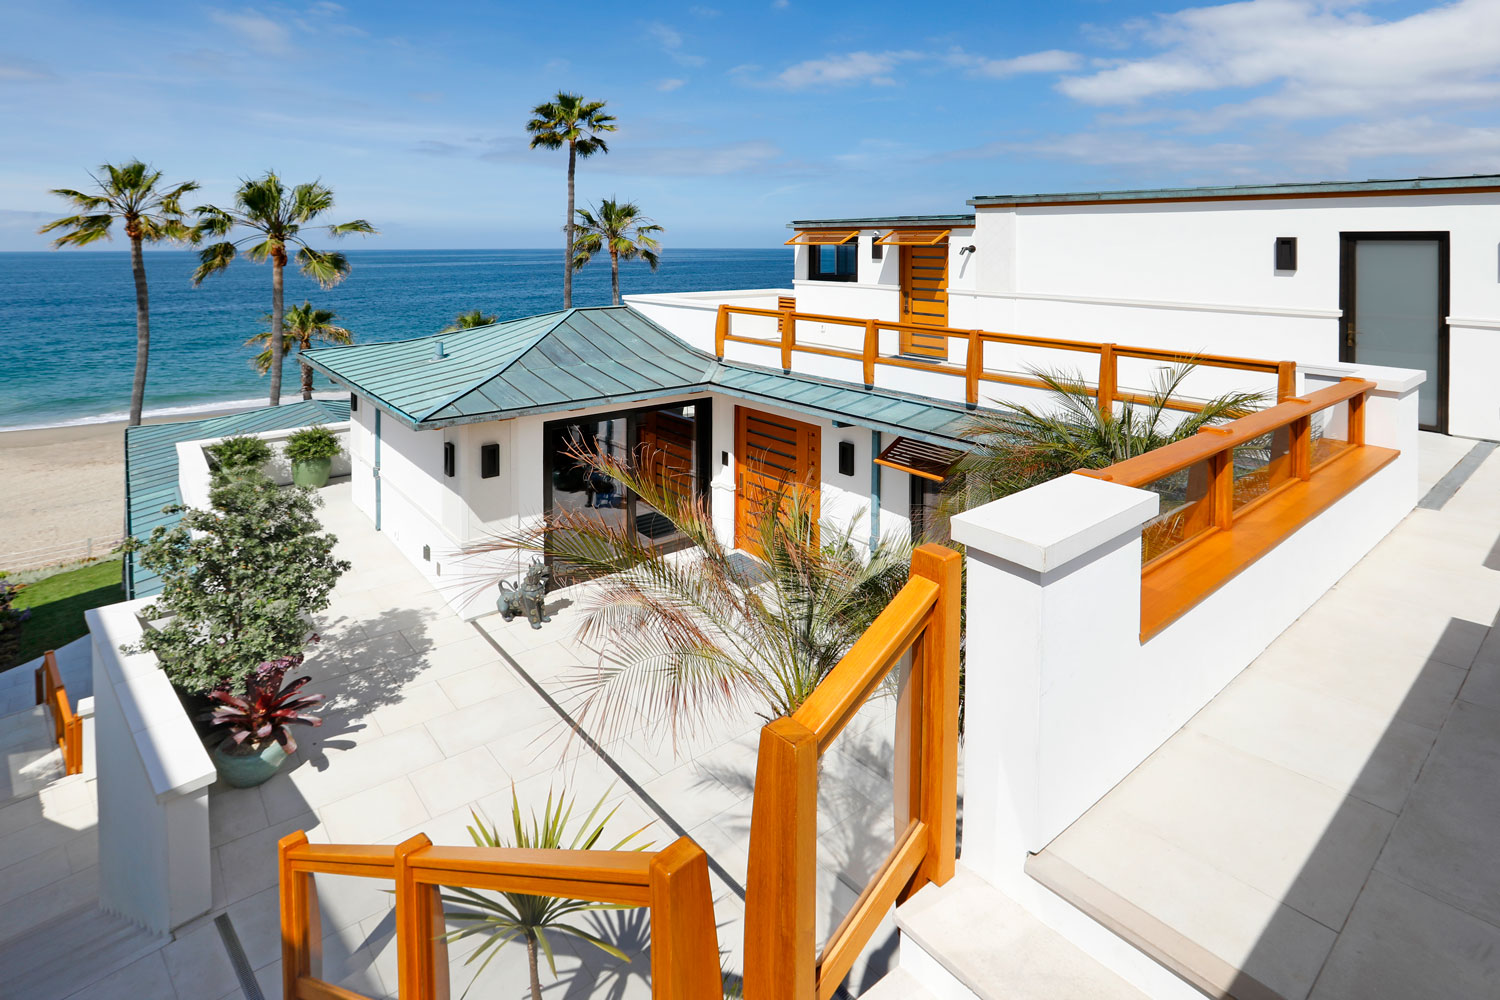 2-Contemporary-Beach-House-Patio-Copper-Roof-Patina-Corbin-Reeves.jpg